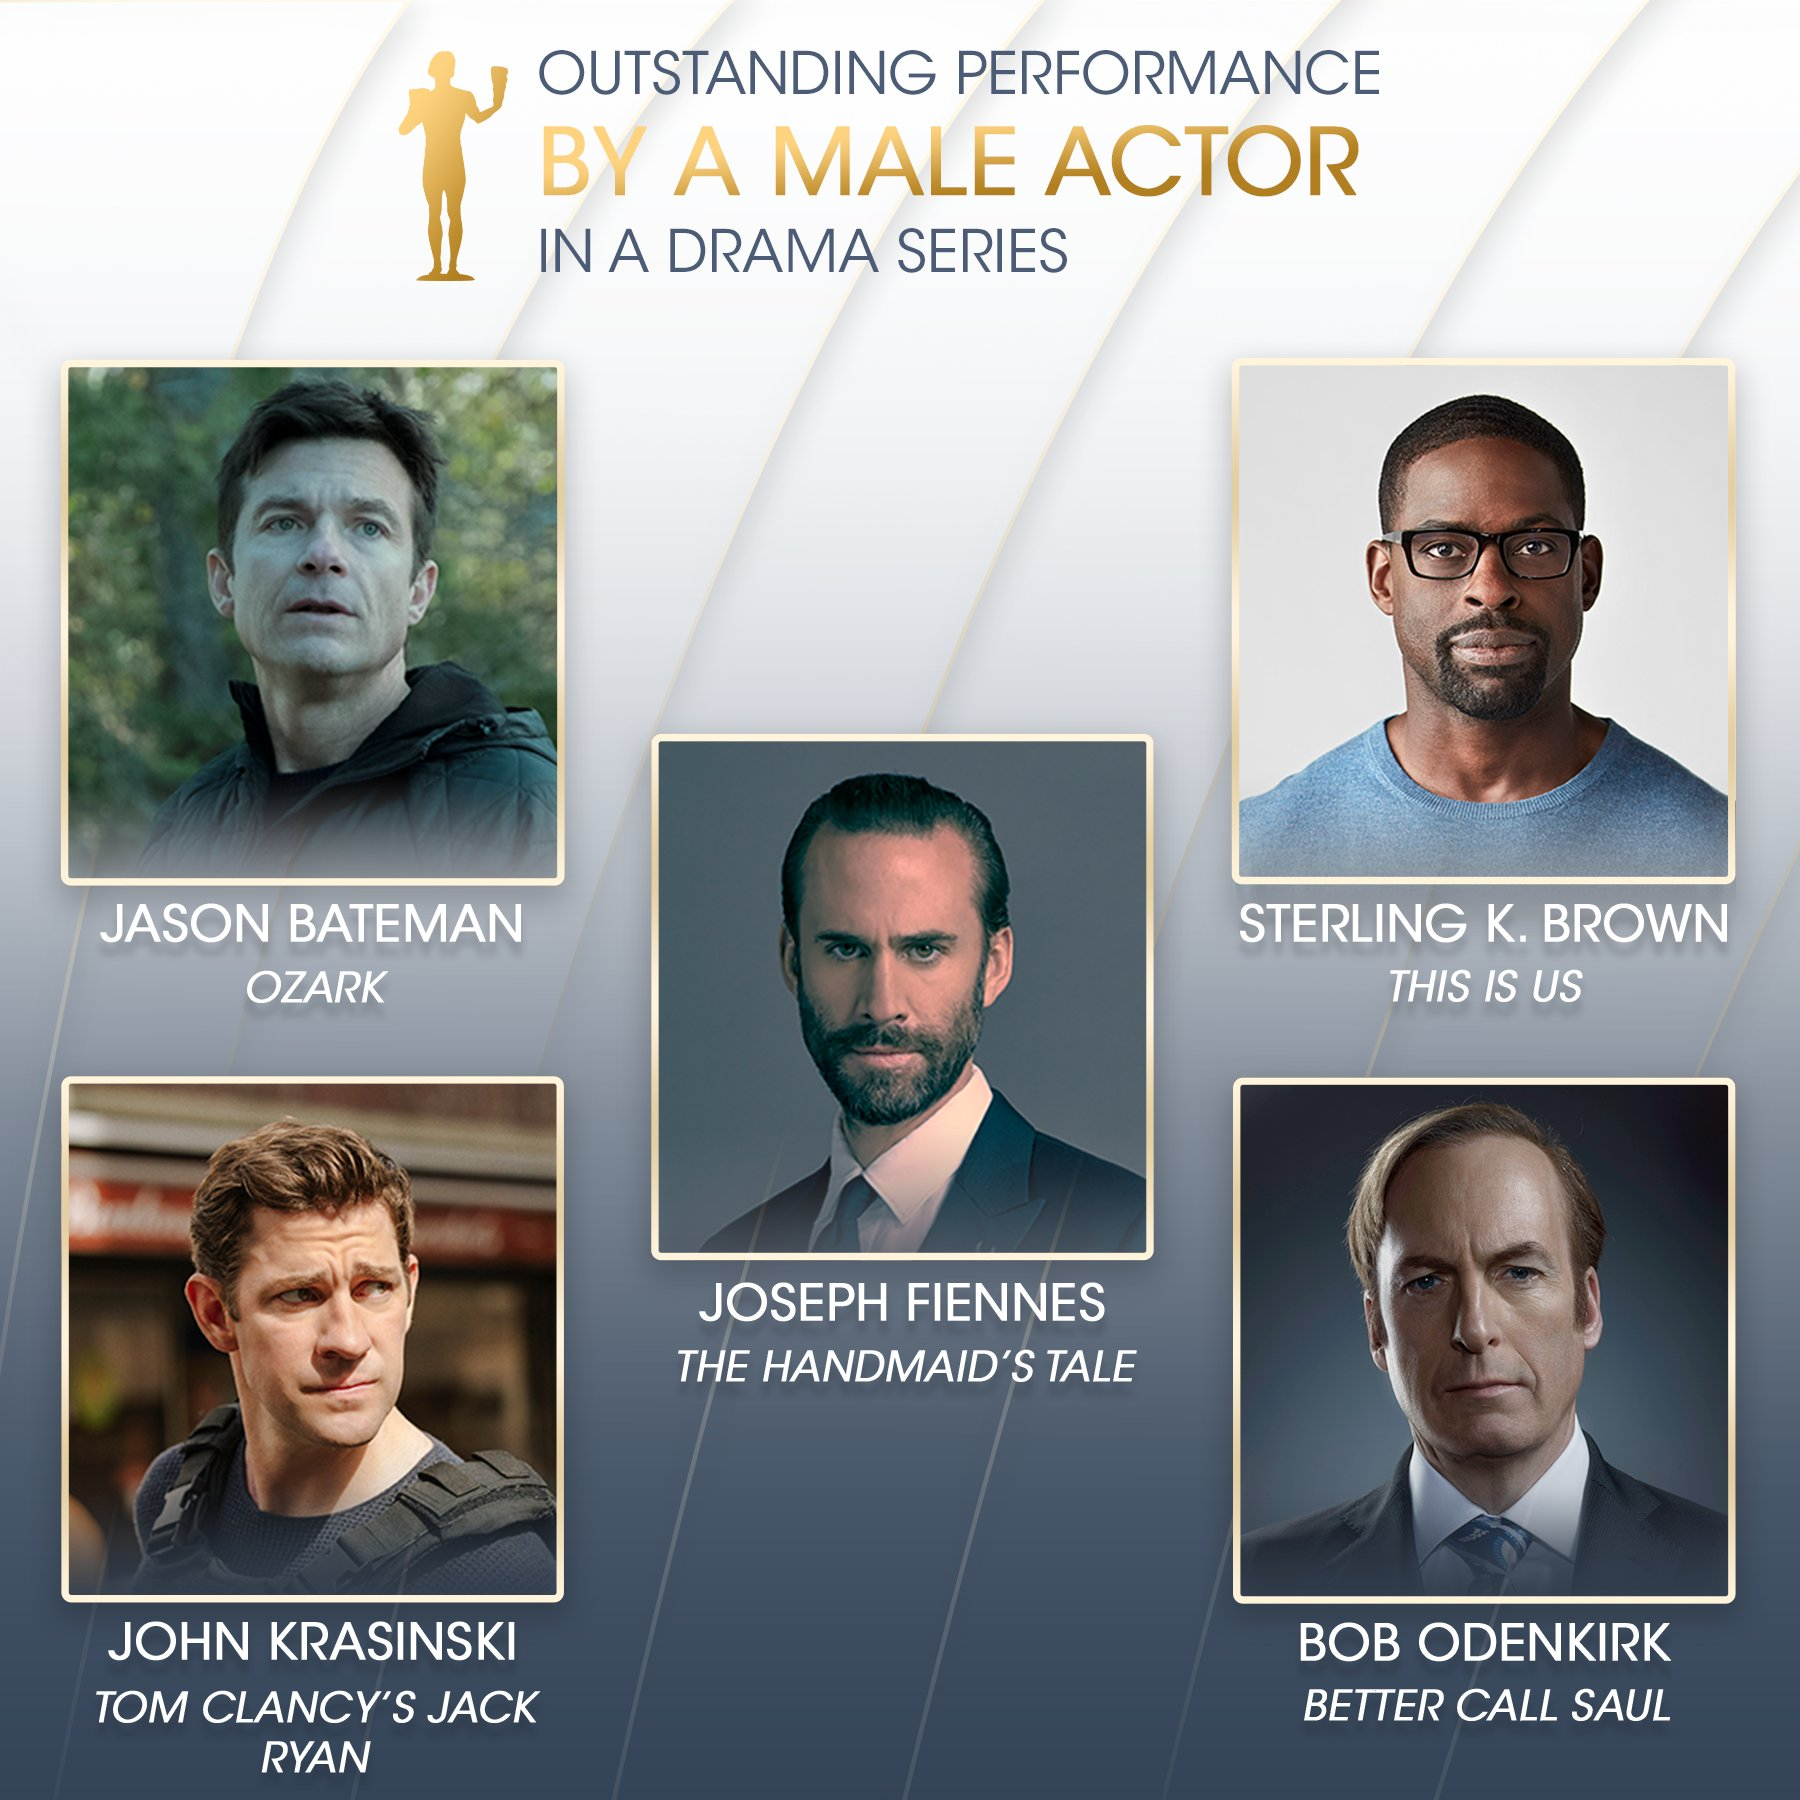 SAG Awards® on Twitter